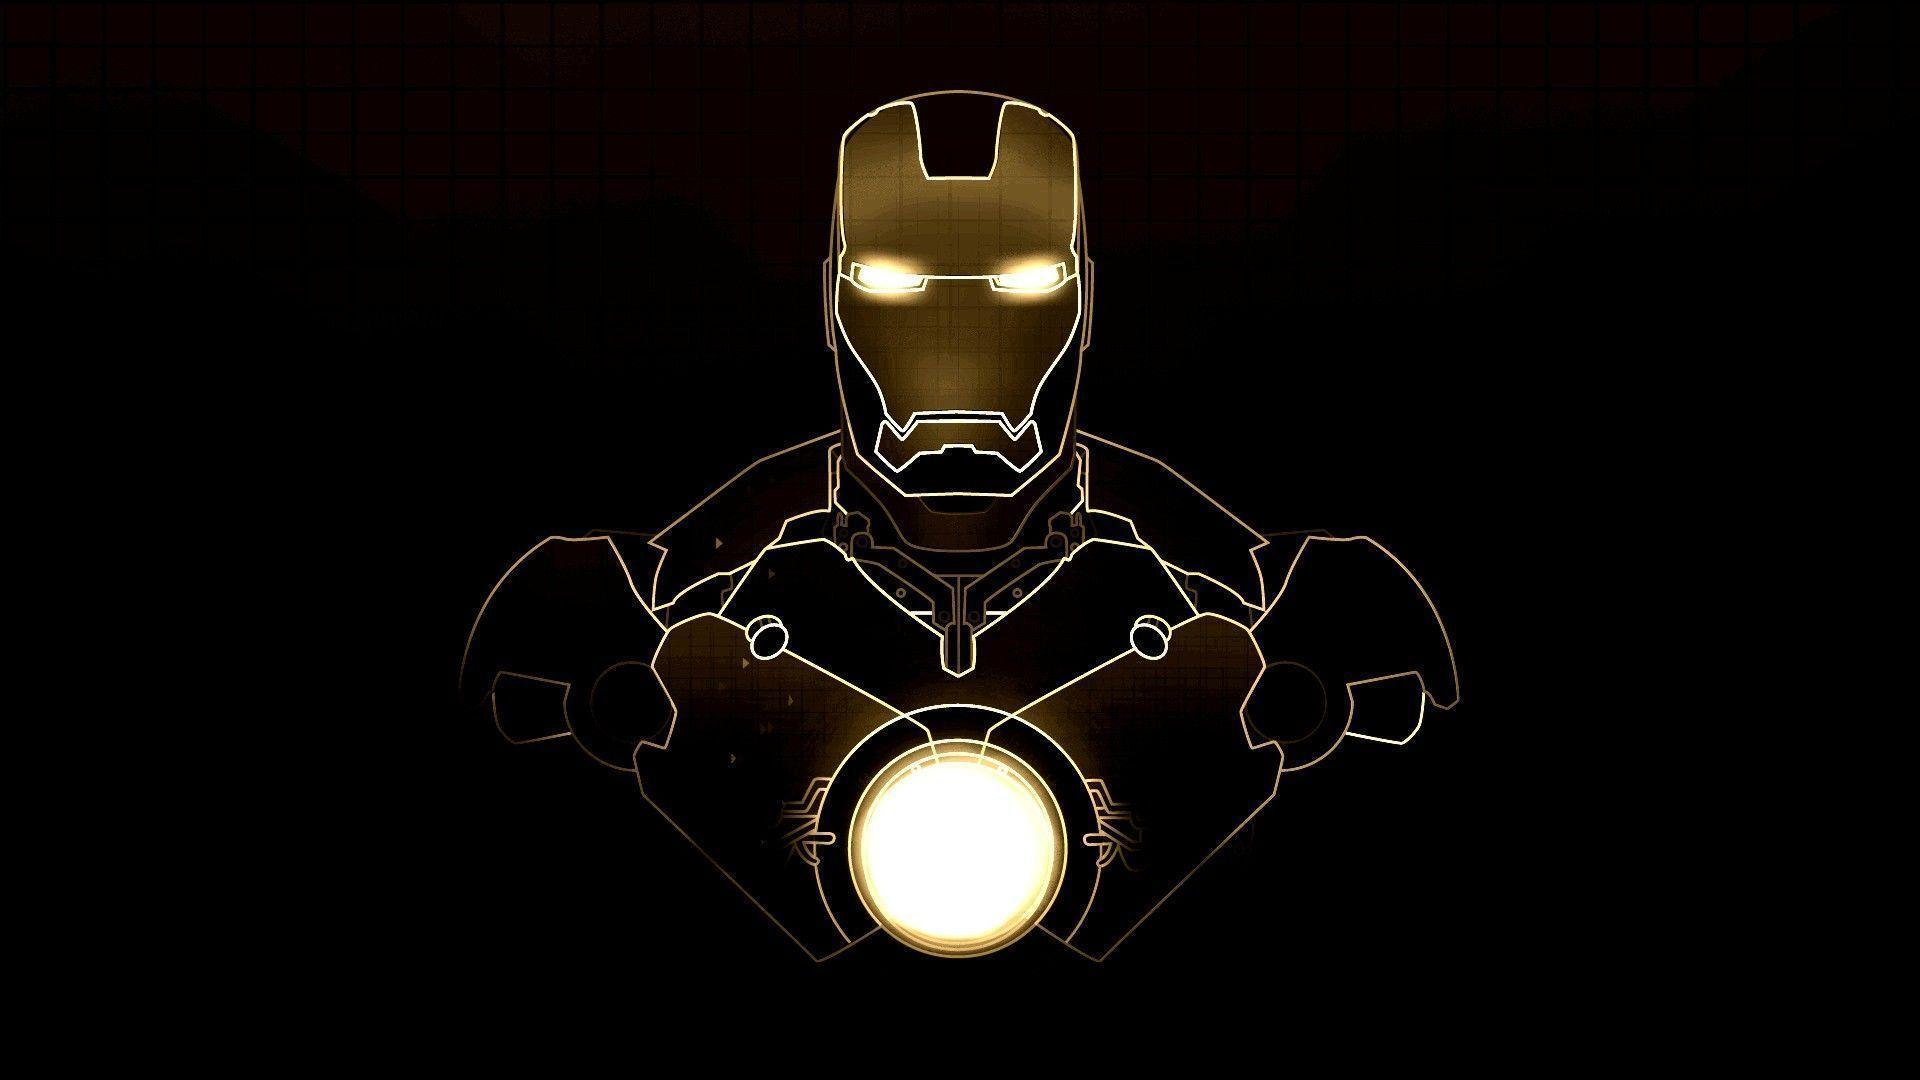 Wallpapers For > Iron Man Wallpaper Hd